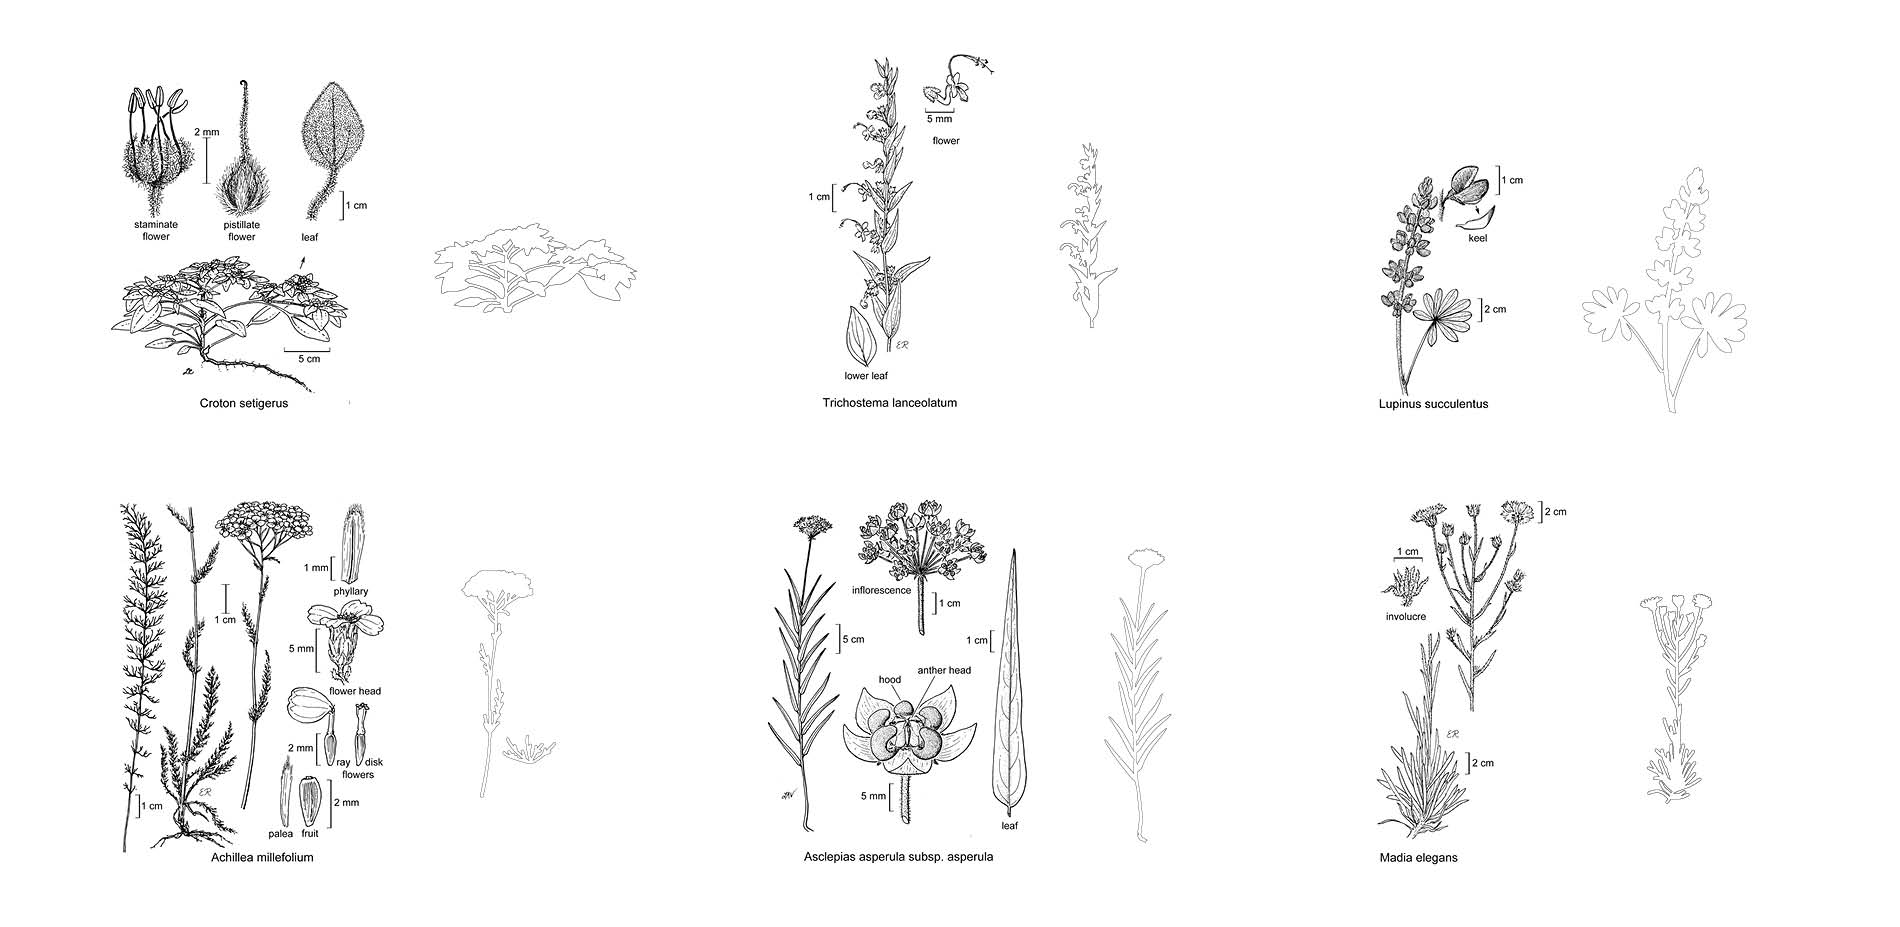 Sourcing the Botanical Drawings